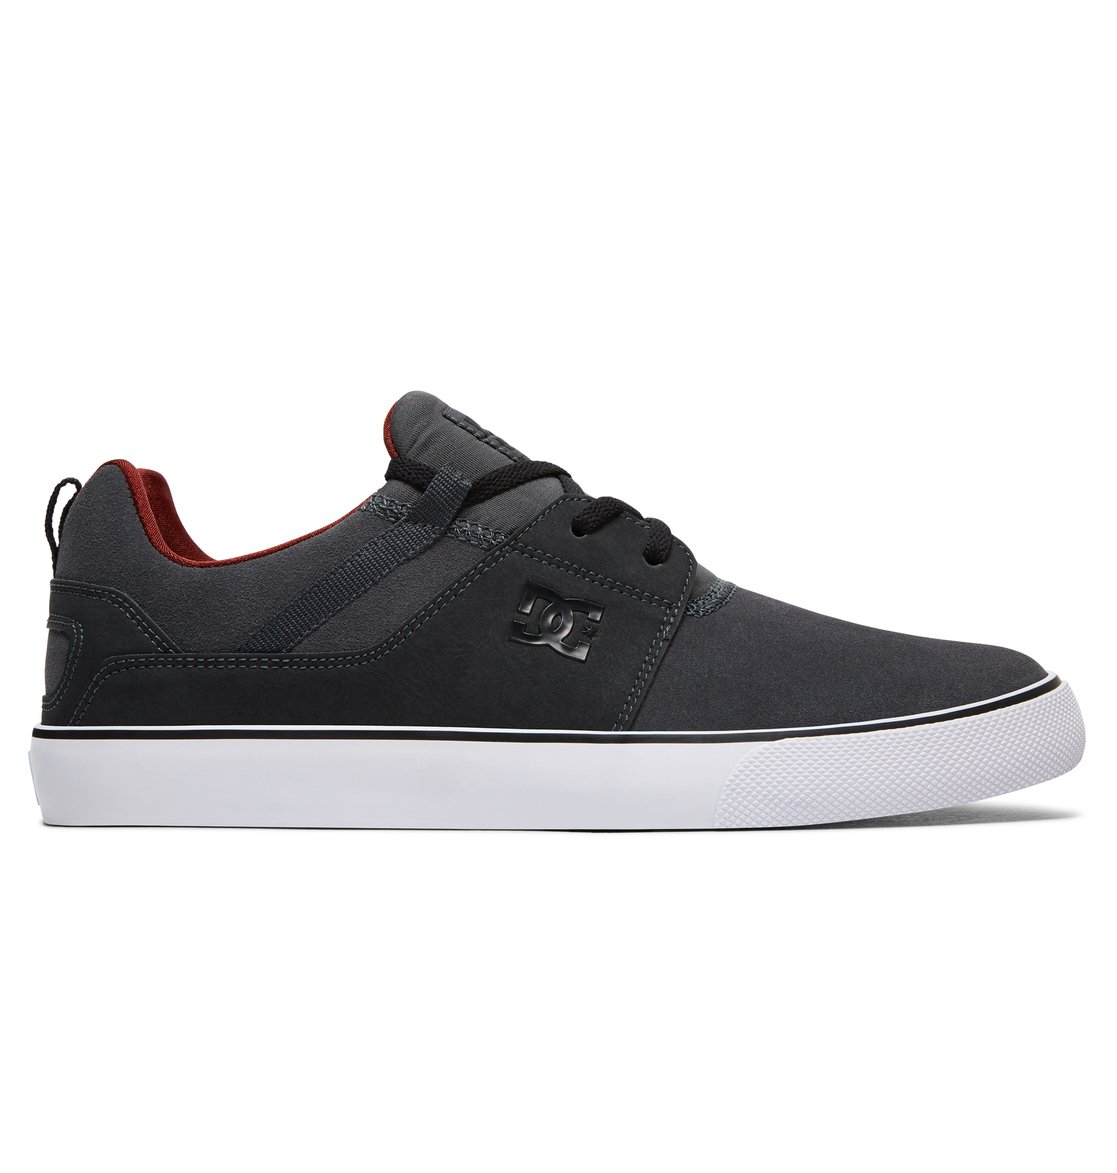 DC Shoes Heathrow Vulc SE, Zapatillas para Hombre, Schwarz (Black/Black/Dk Grey Bkd), 42 EU